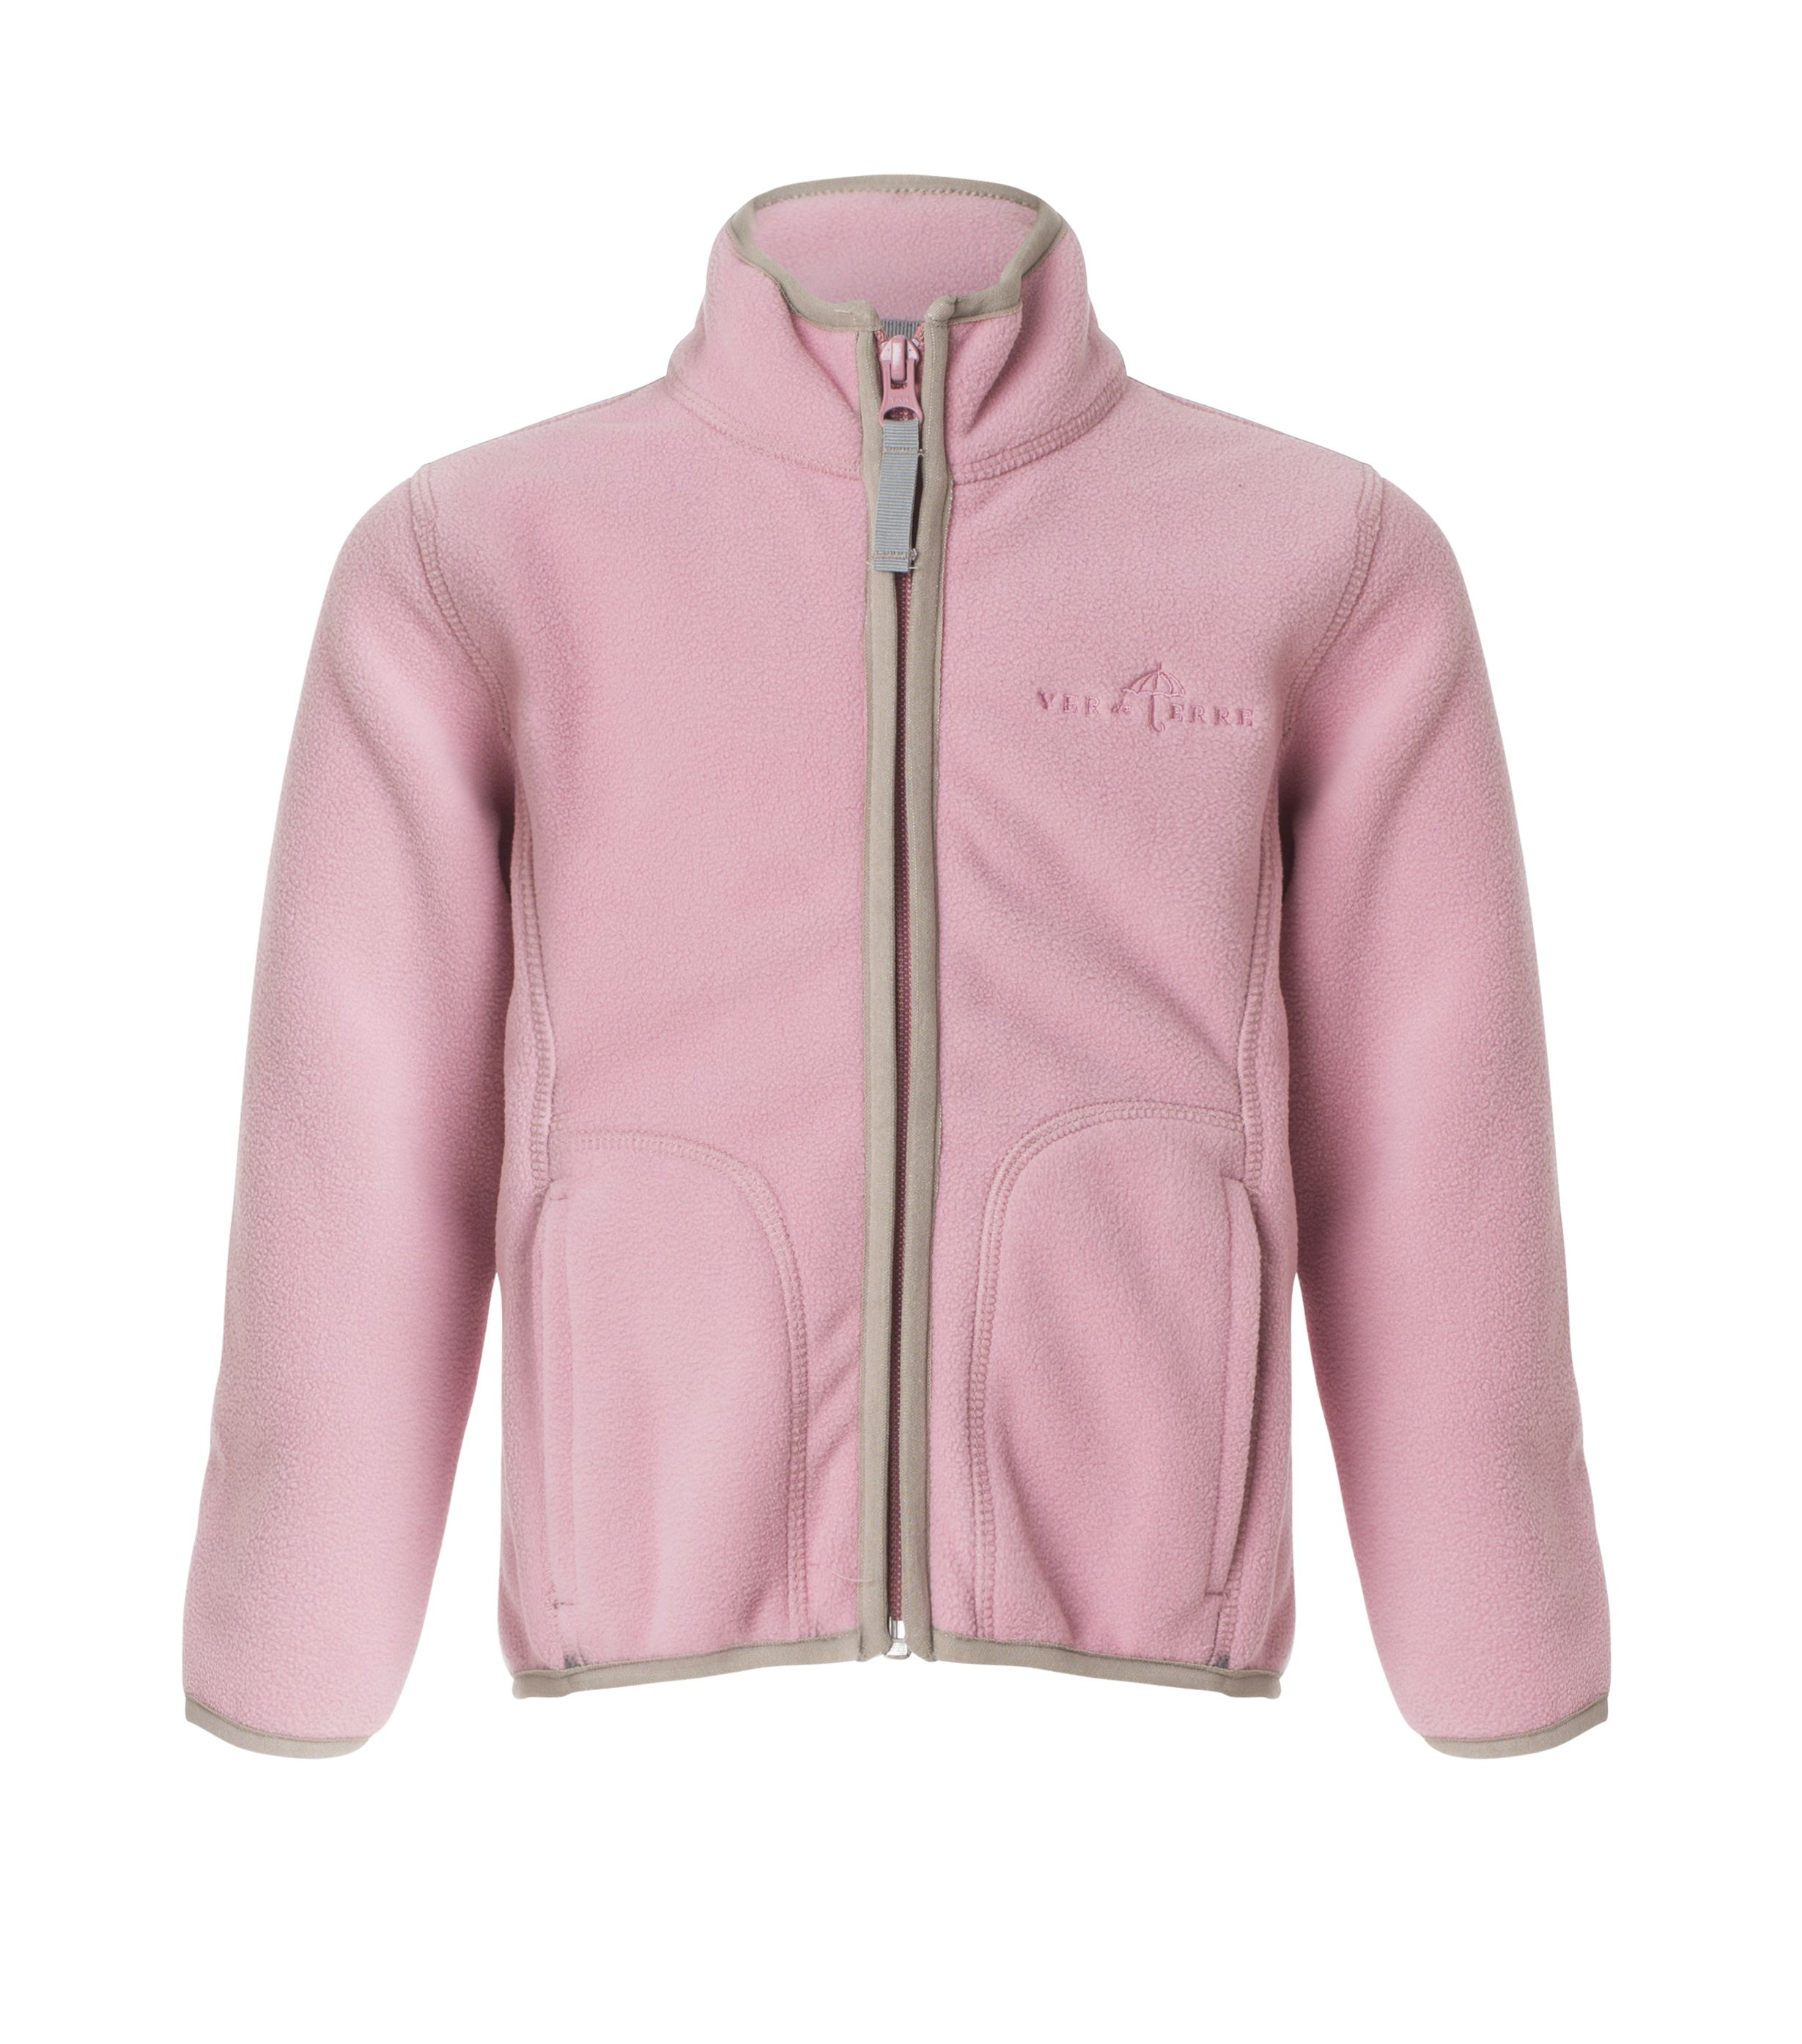 bc2268886 Ver de Terre fleece - pink blush. More colors available on our ...